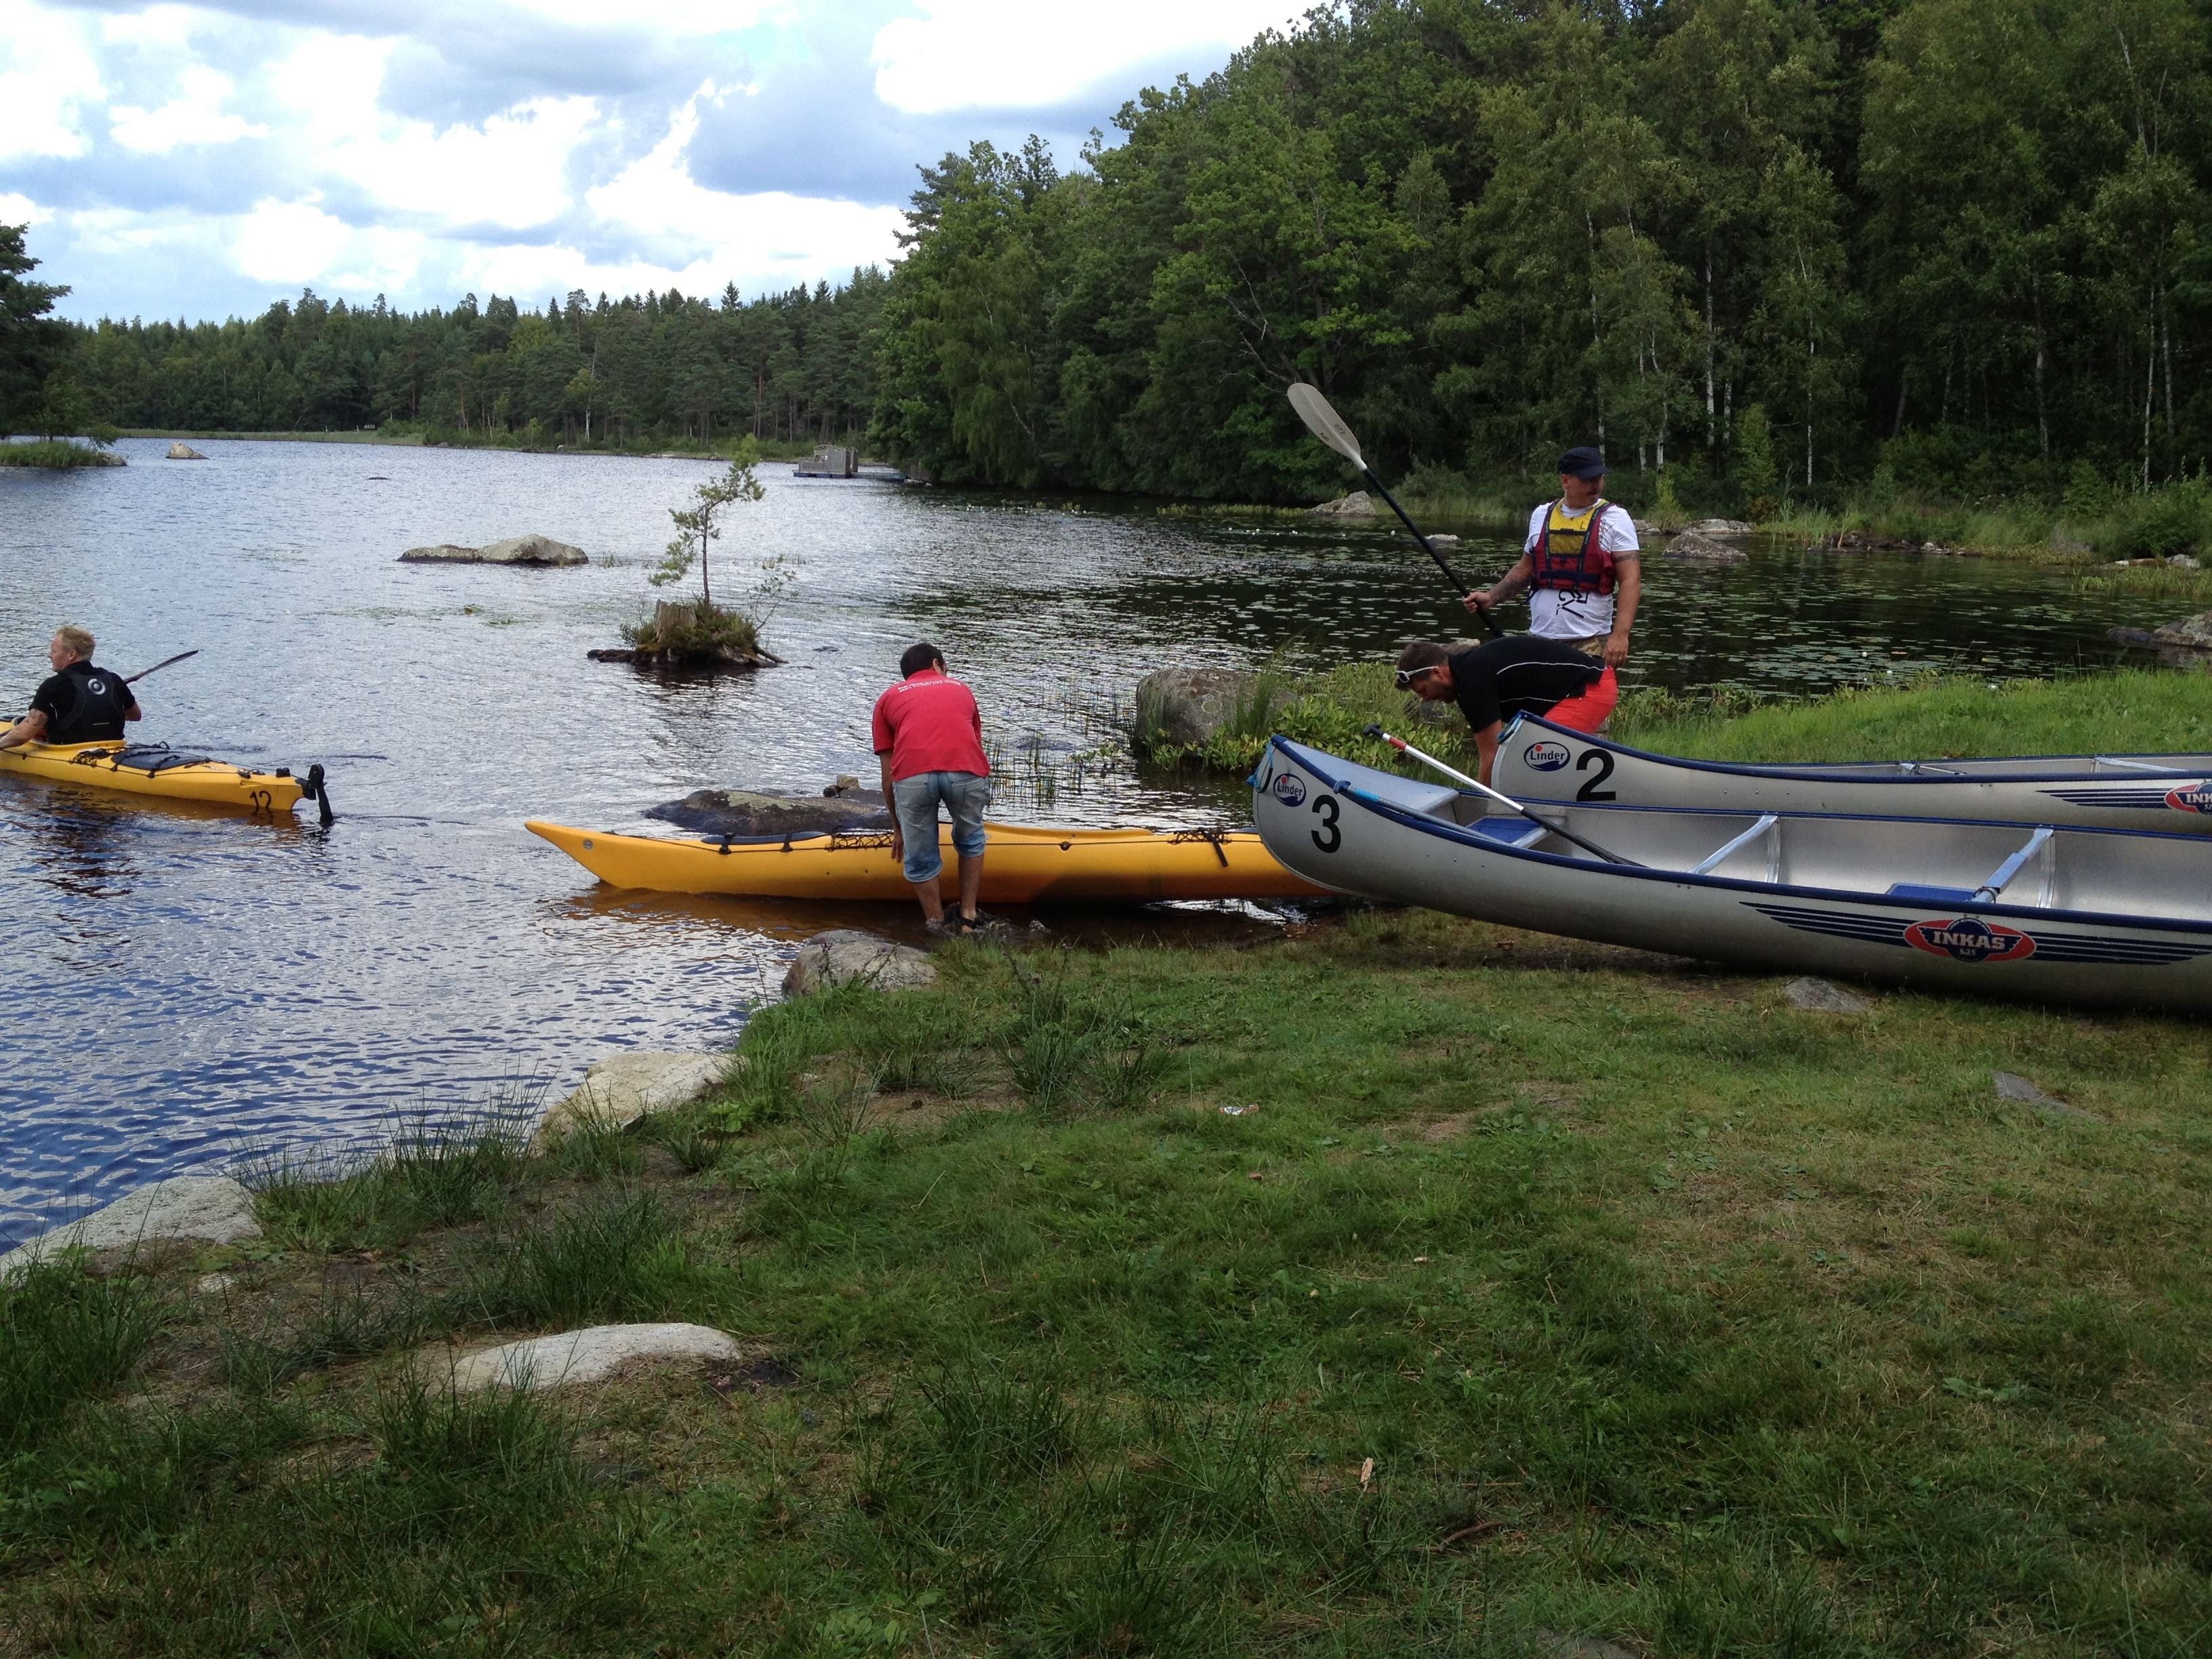 Rent a Kayak shortterm or day (9:00-16:30)